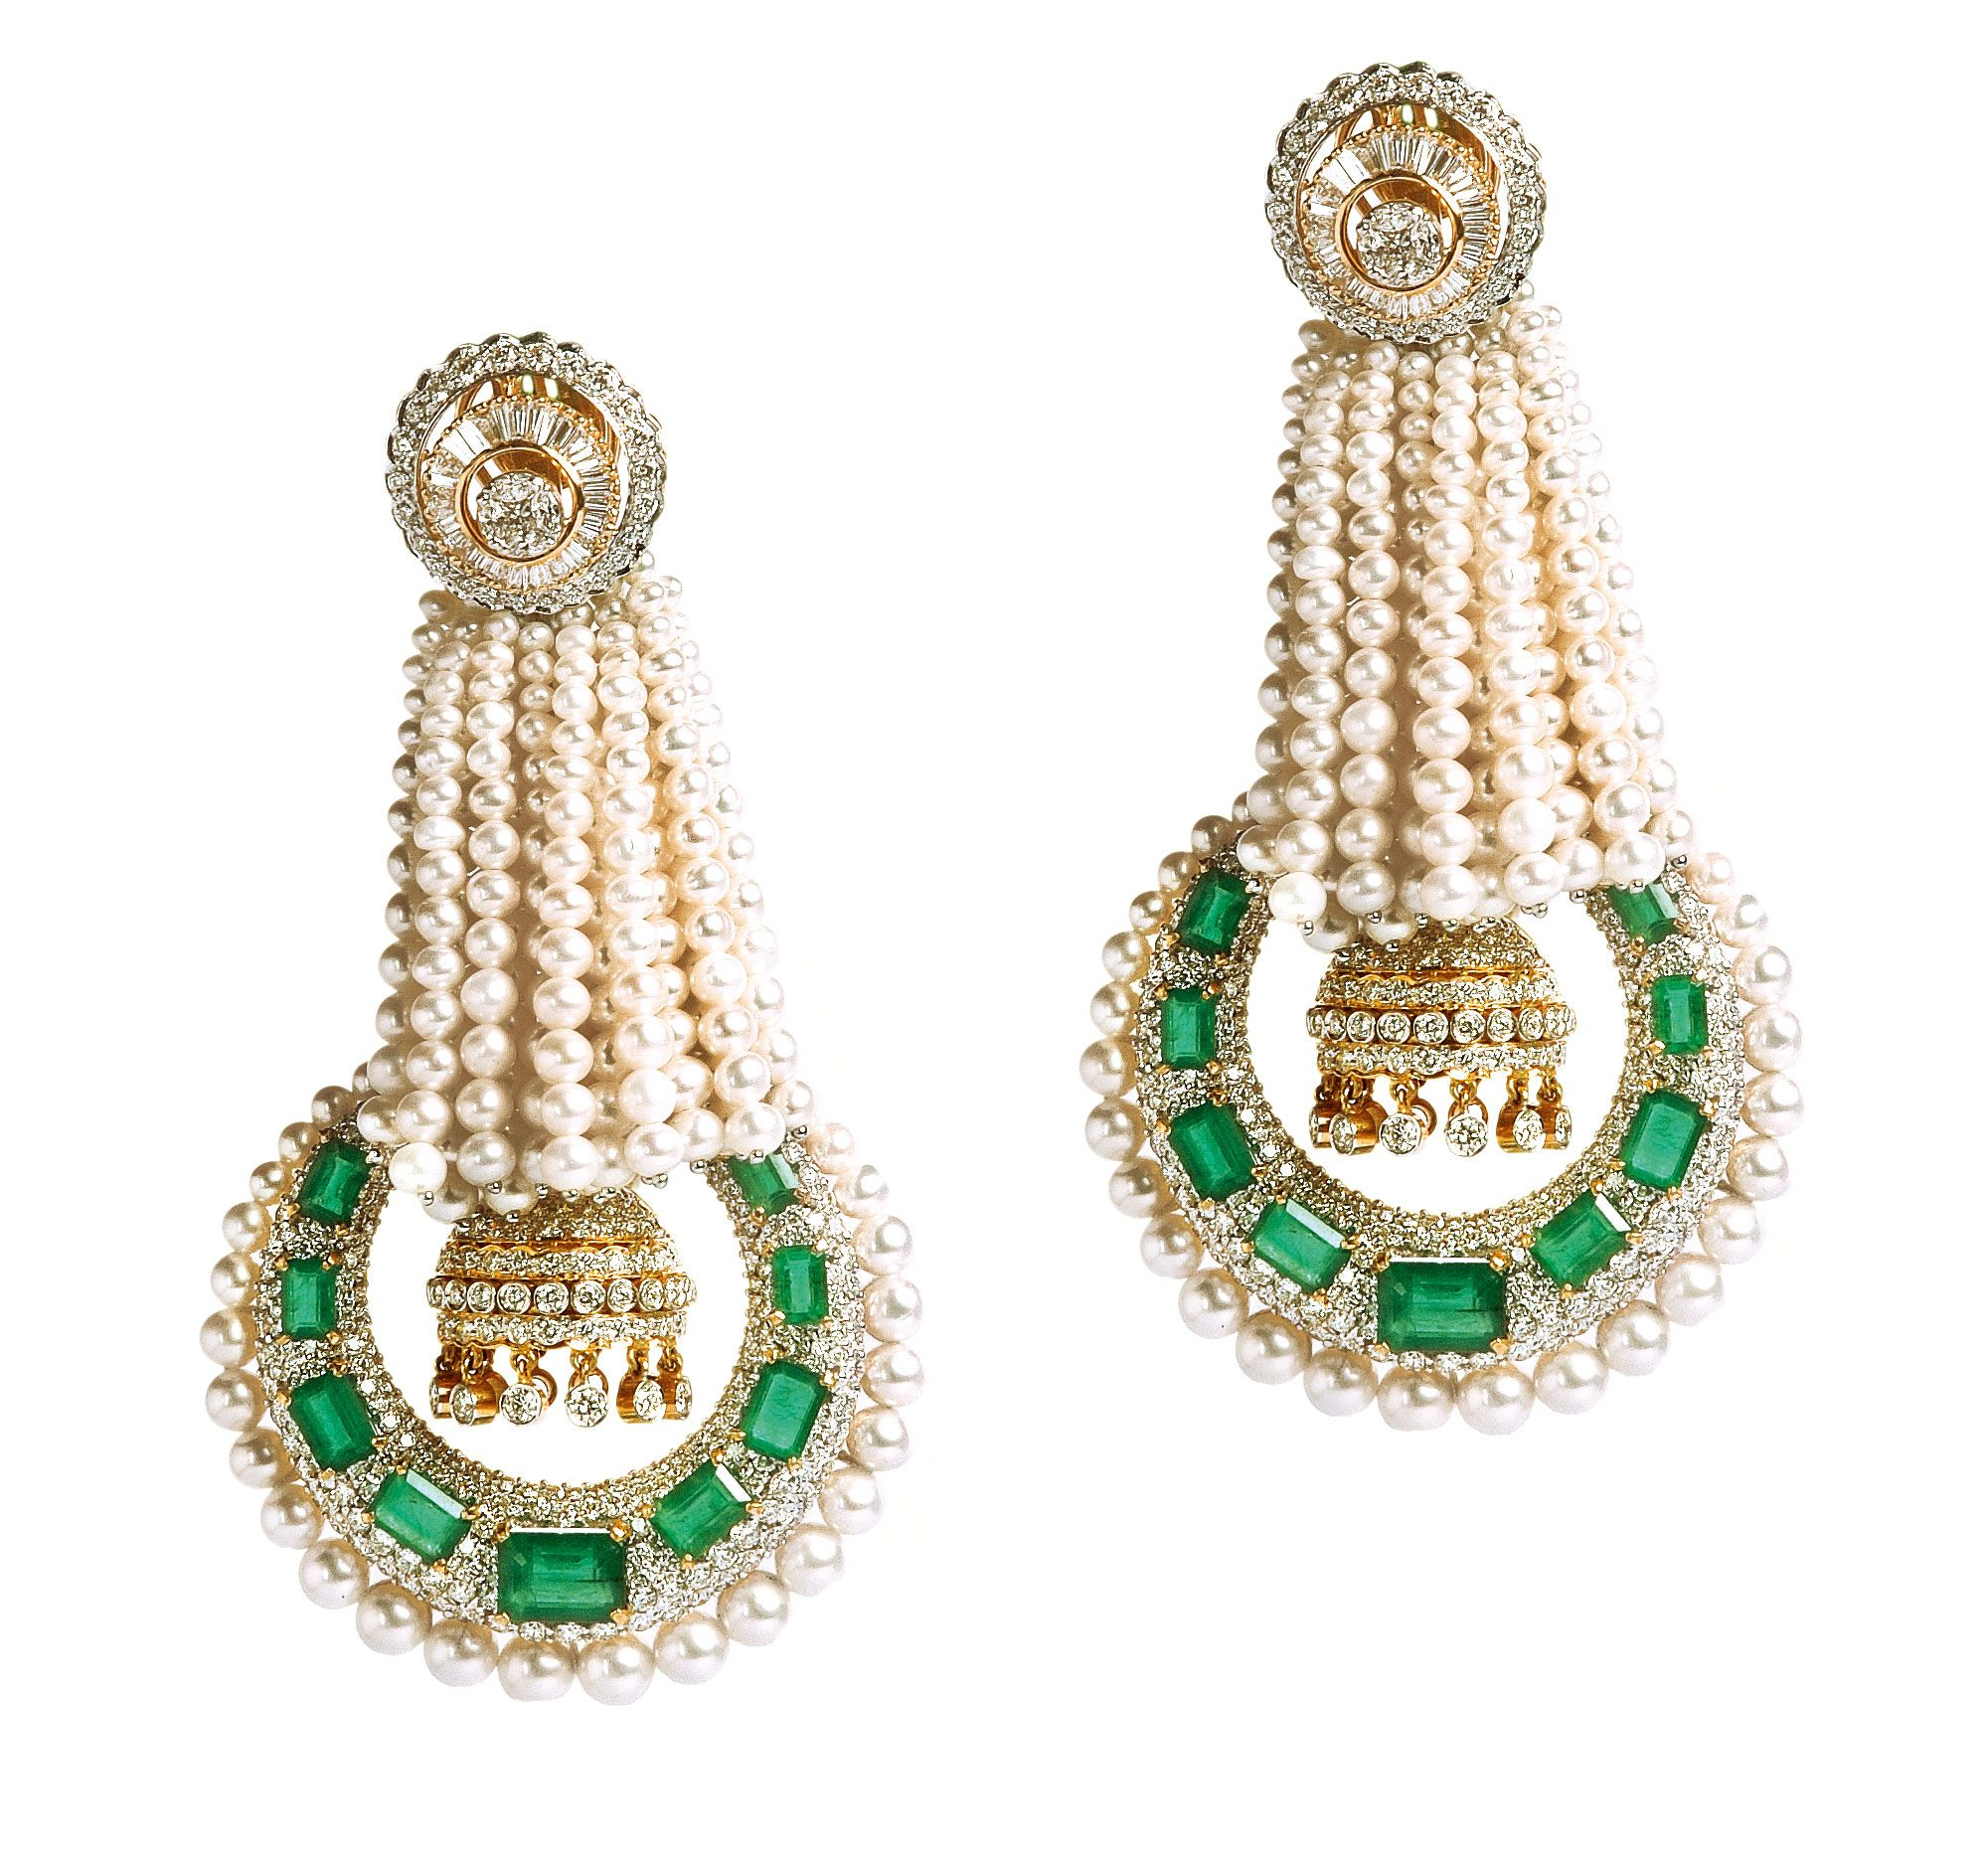 Freshwater Pearls Diamonds And Emeralds Set In Yellow Gold Earrings Anmol Jewellers Price On Request